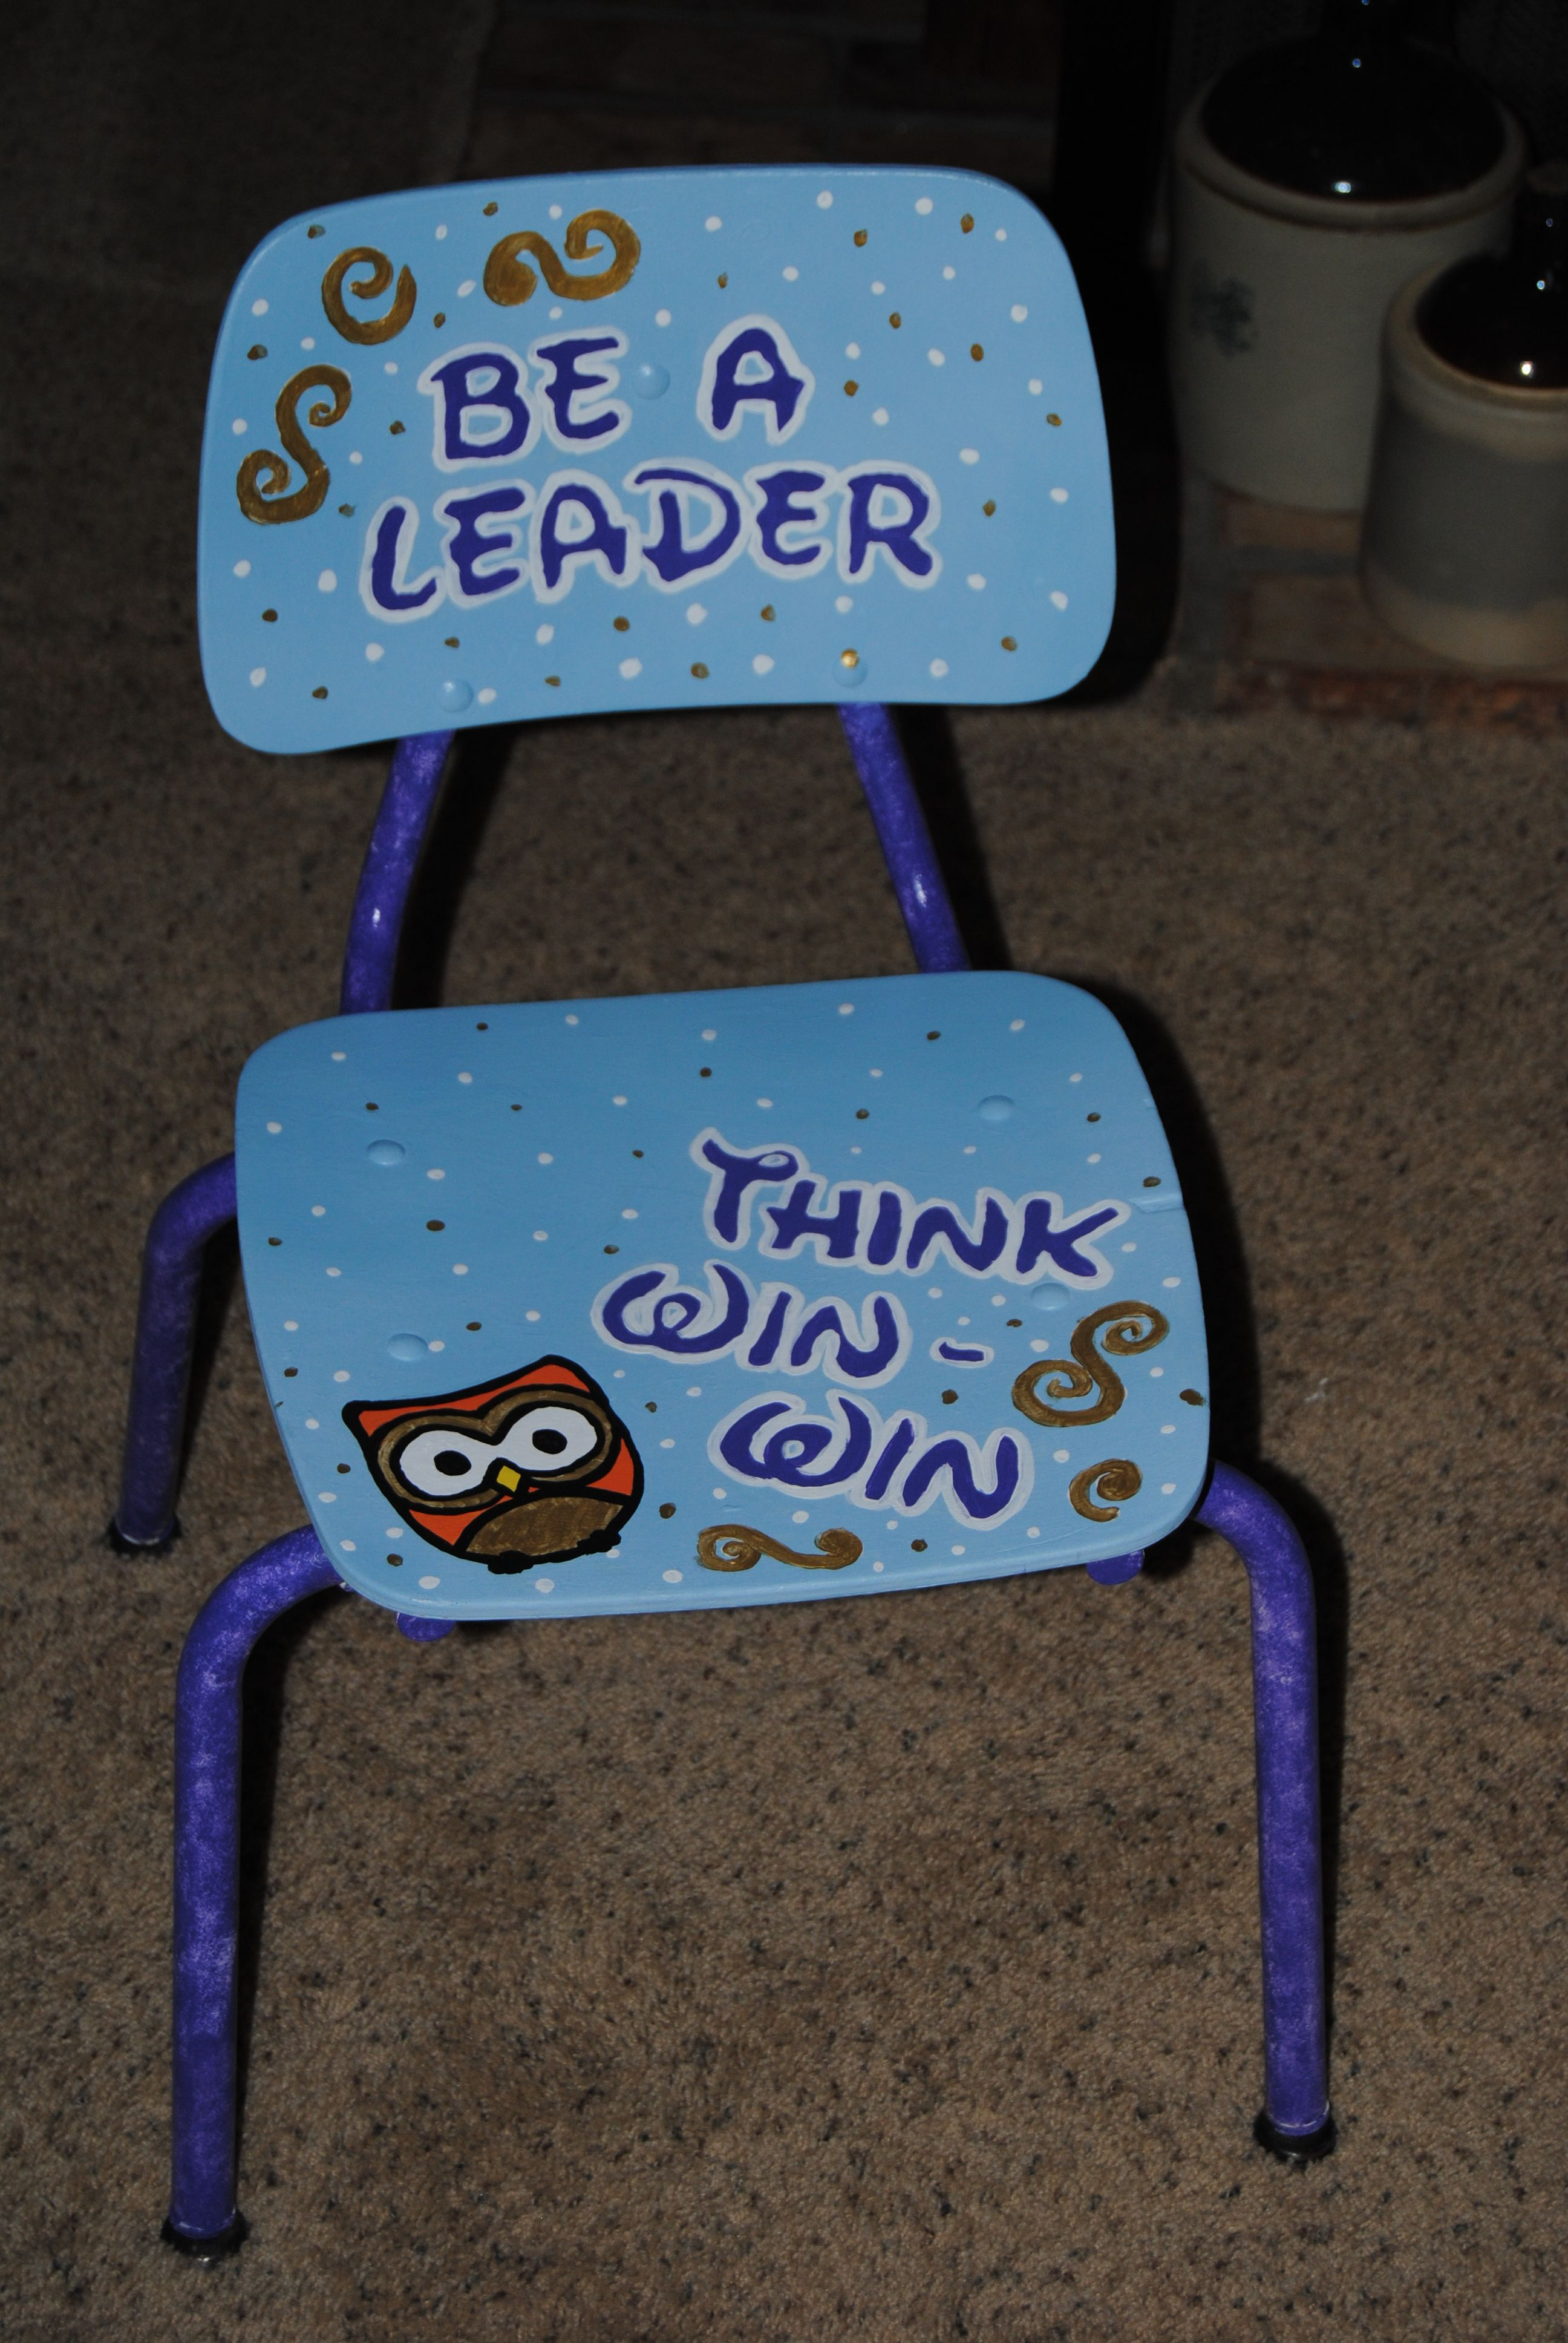 7 Habits Chair Think Win Win